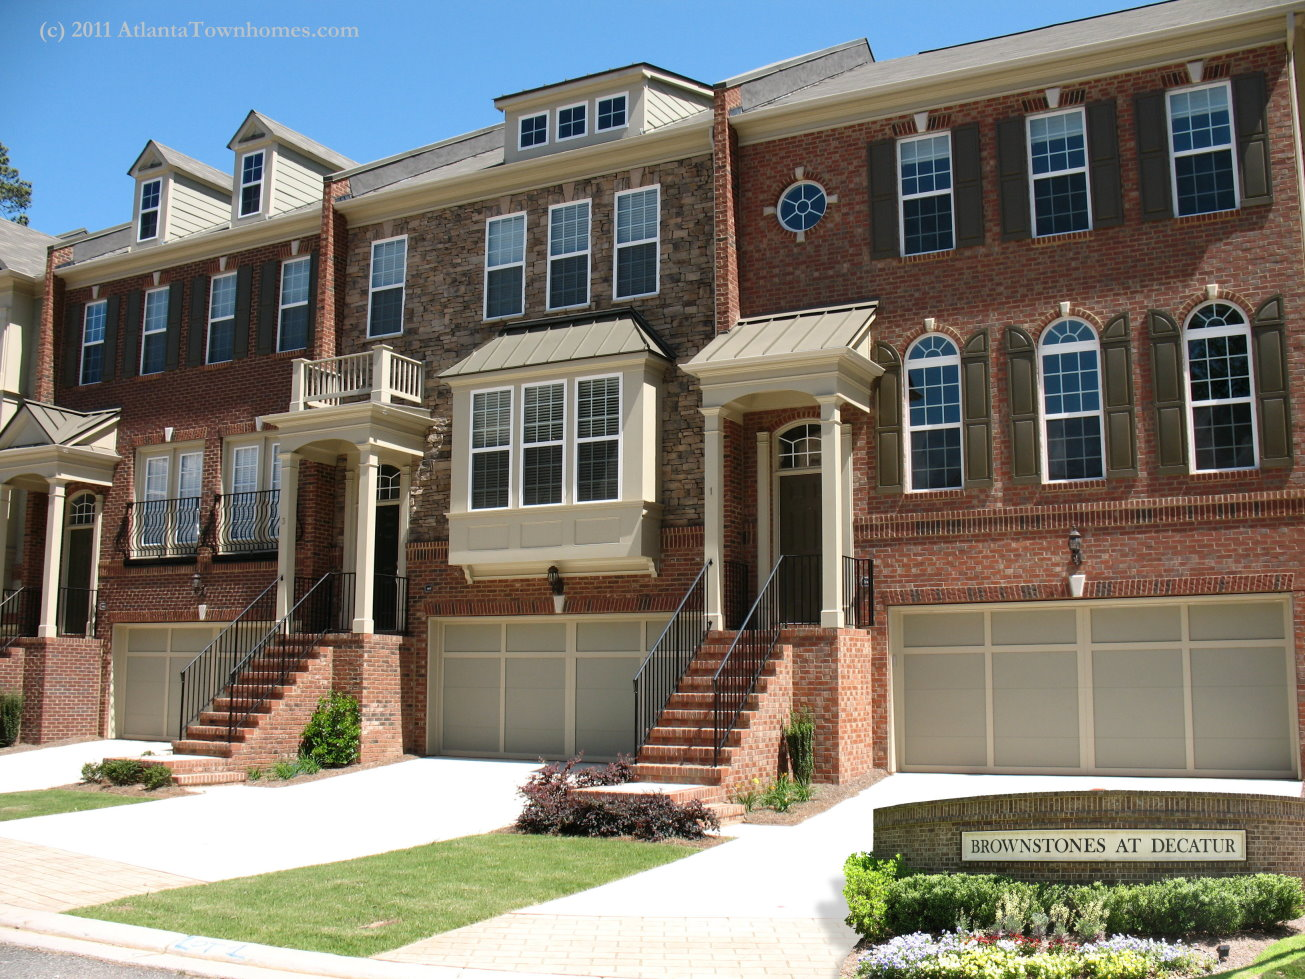 Brownstones At Decatur Townhomes